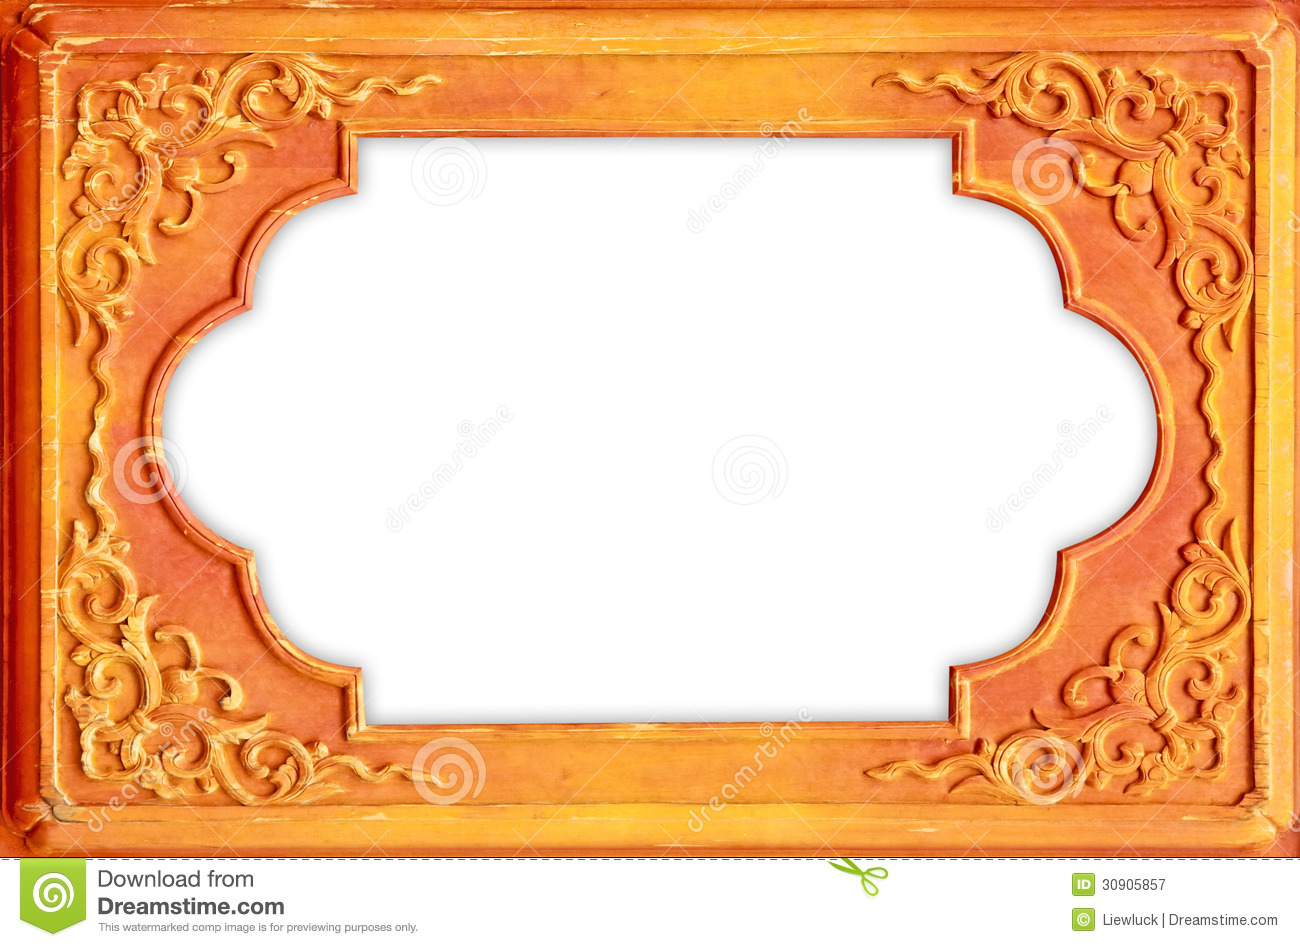 Design On The Wooden Frame Royalty Free Stock Photography Image